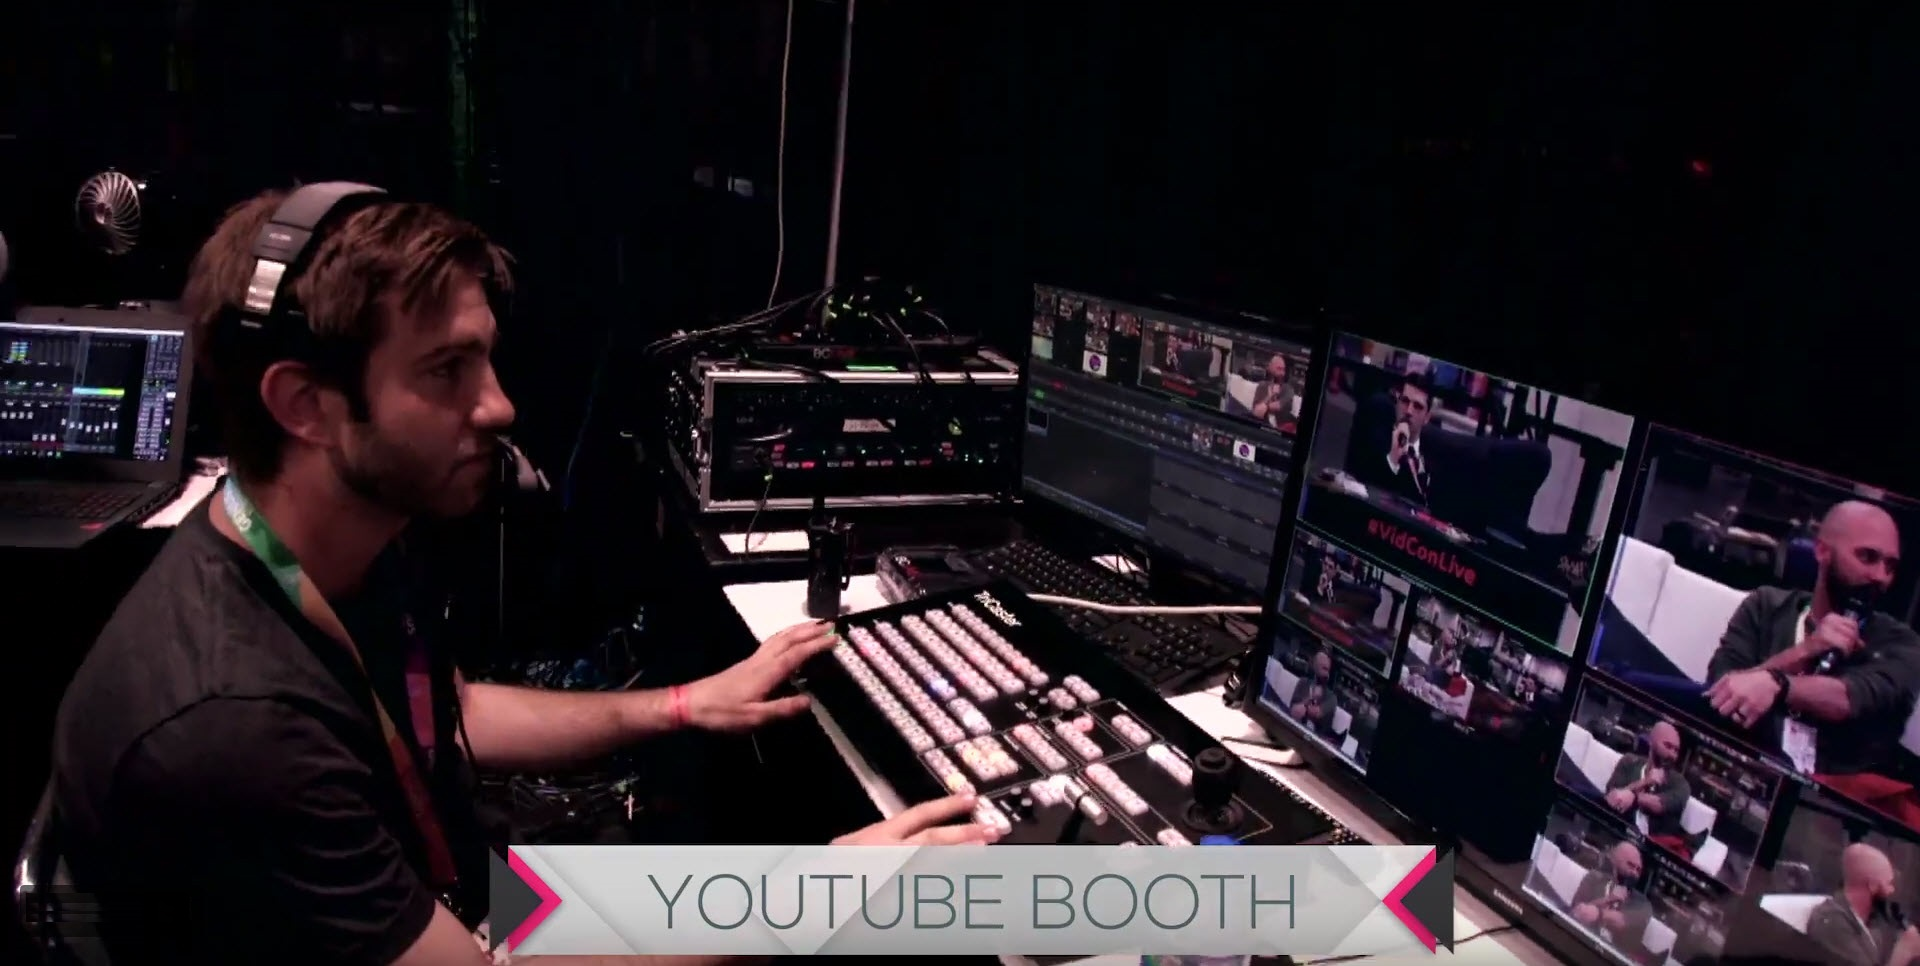 Another TriCaster was located in the YouTube Booth on the convention floor.